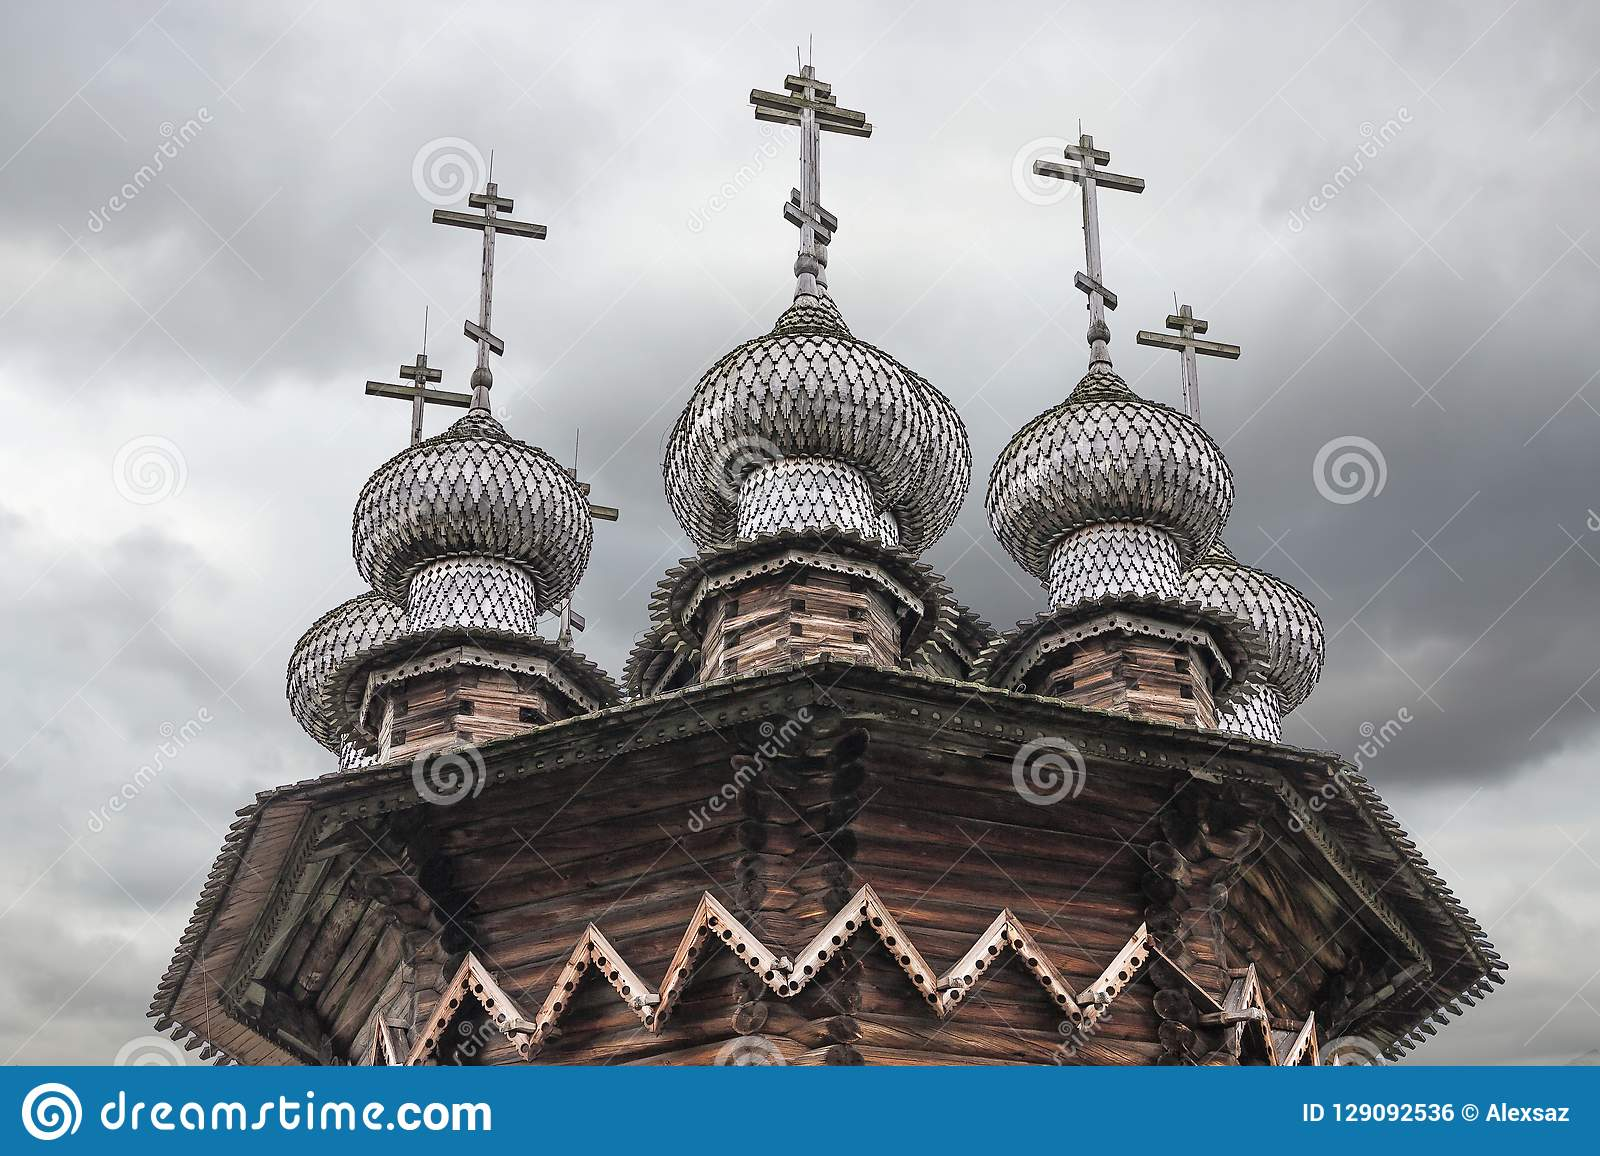 Church of the Intercession. Kizhi island, Medvezhyegorsky district, Karelia. Russian Federation.